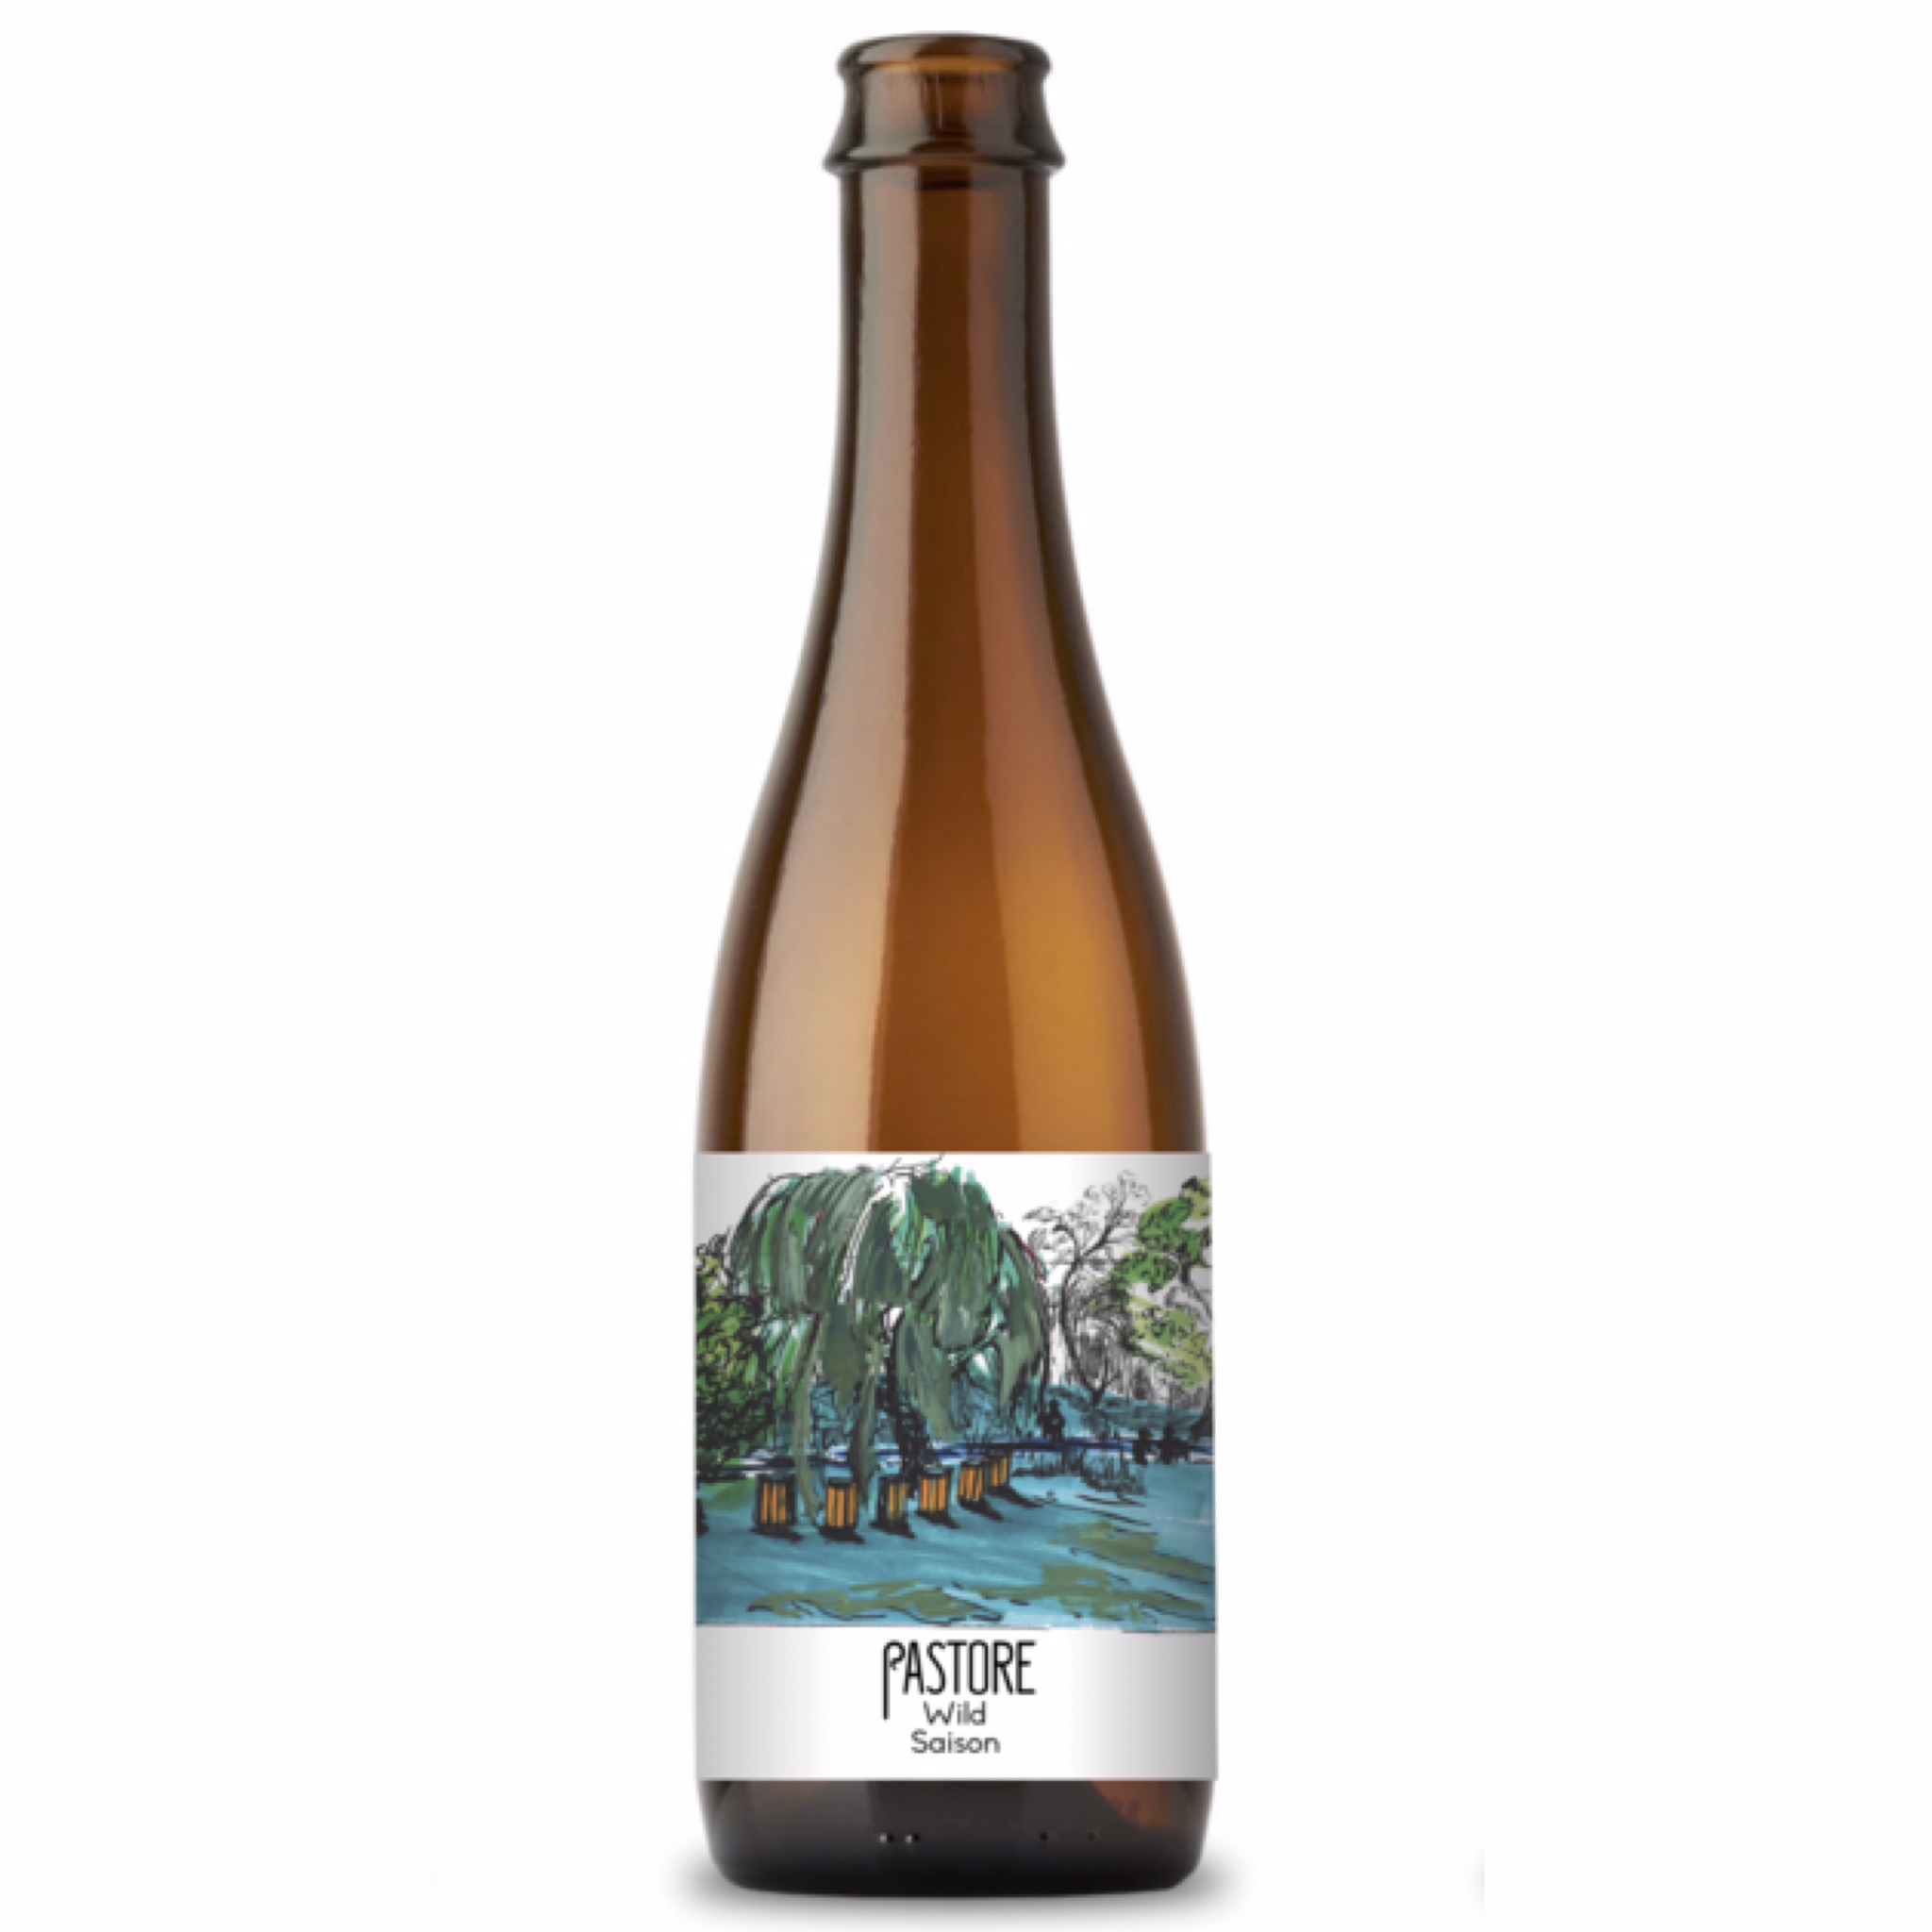 Wild Saison 5.6% 375ml Pastore Brewing & Blending